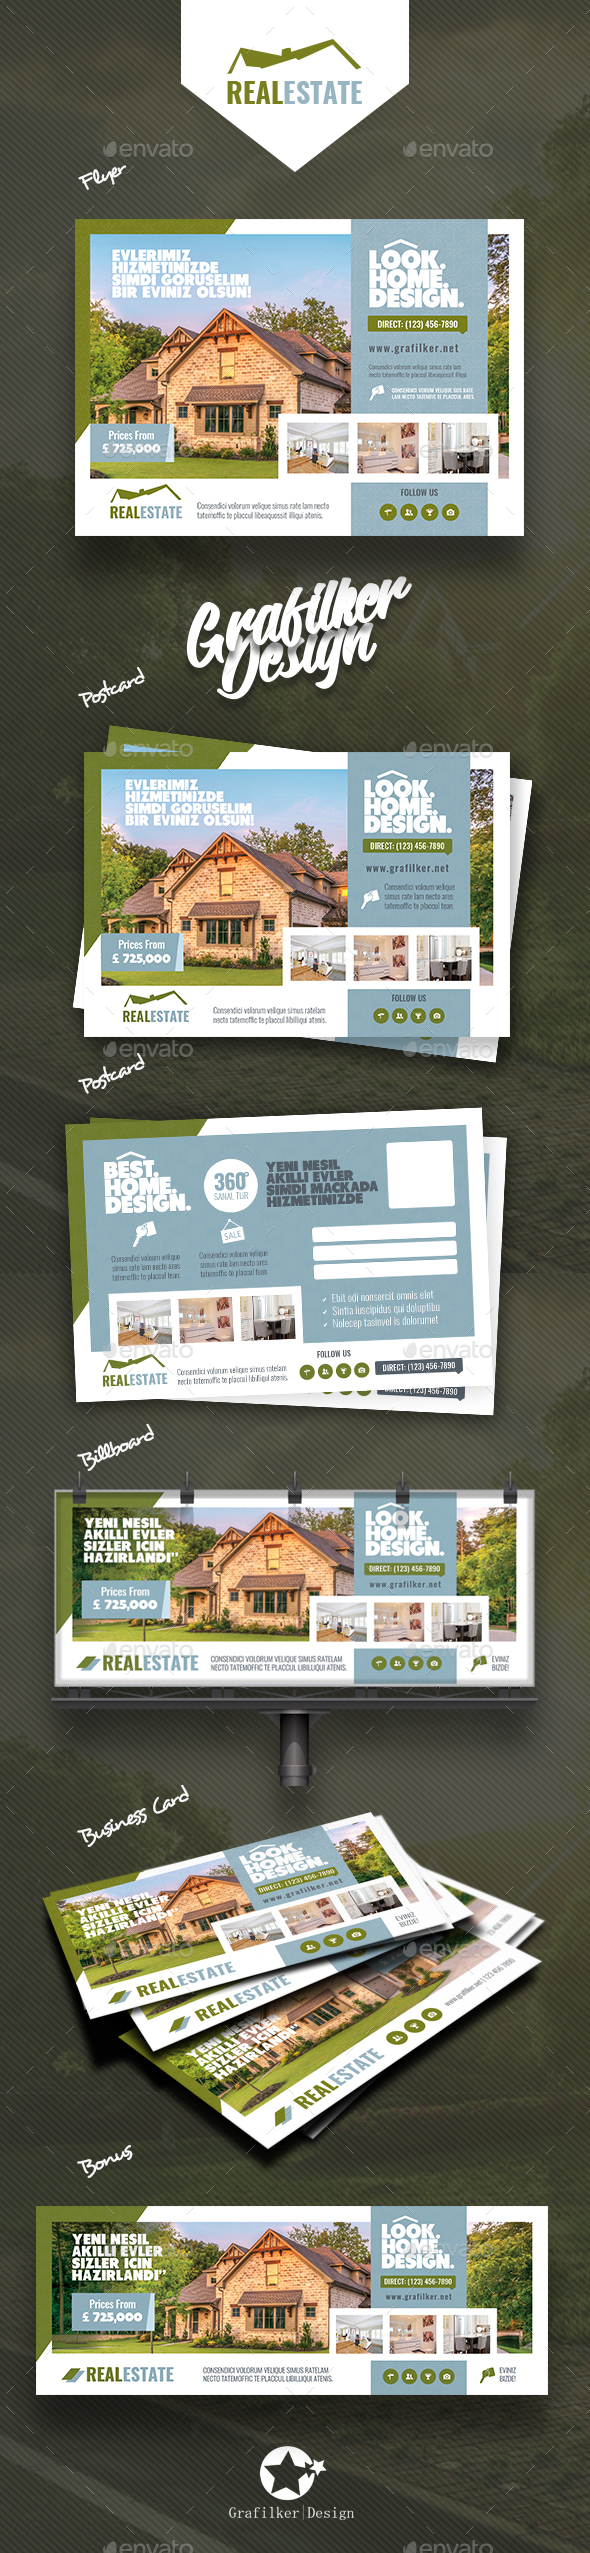 GraphicRiver Real Estate Bundle Templates 21041370